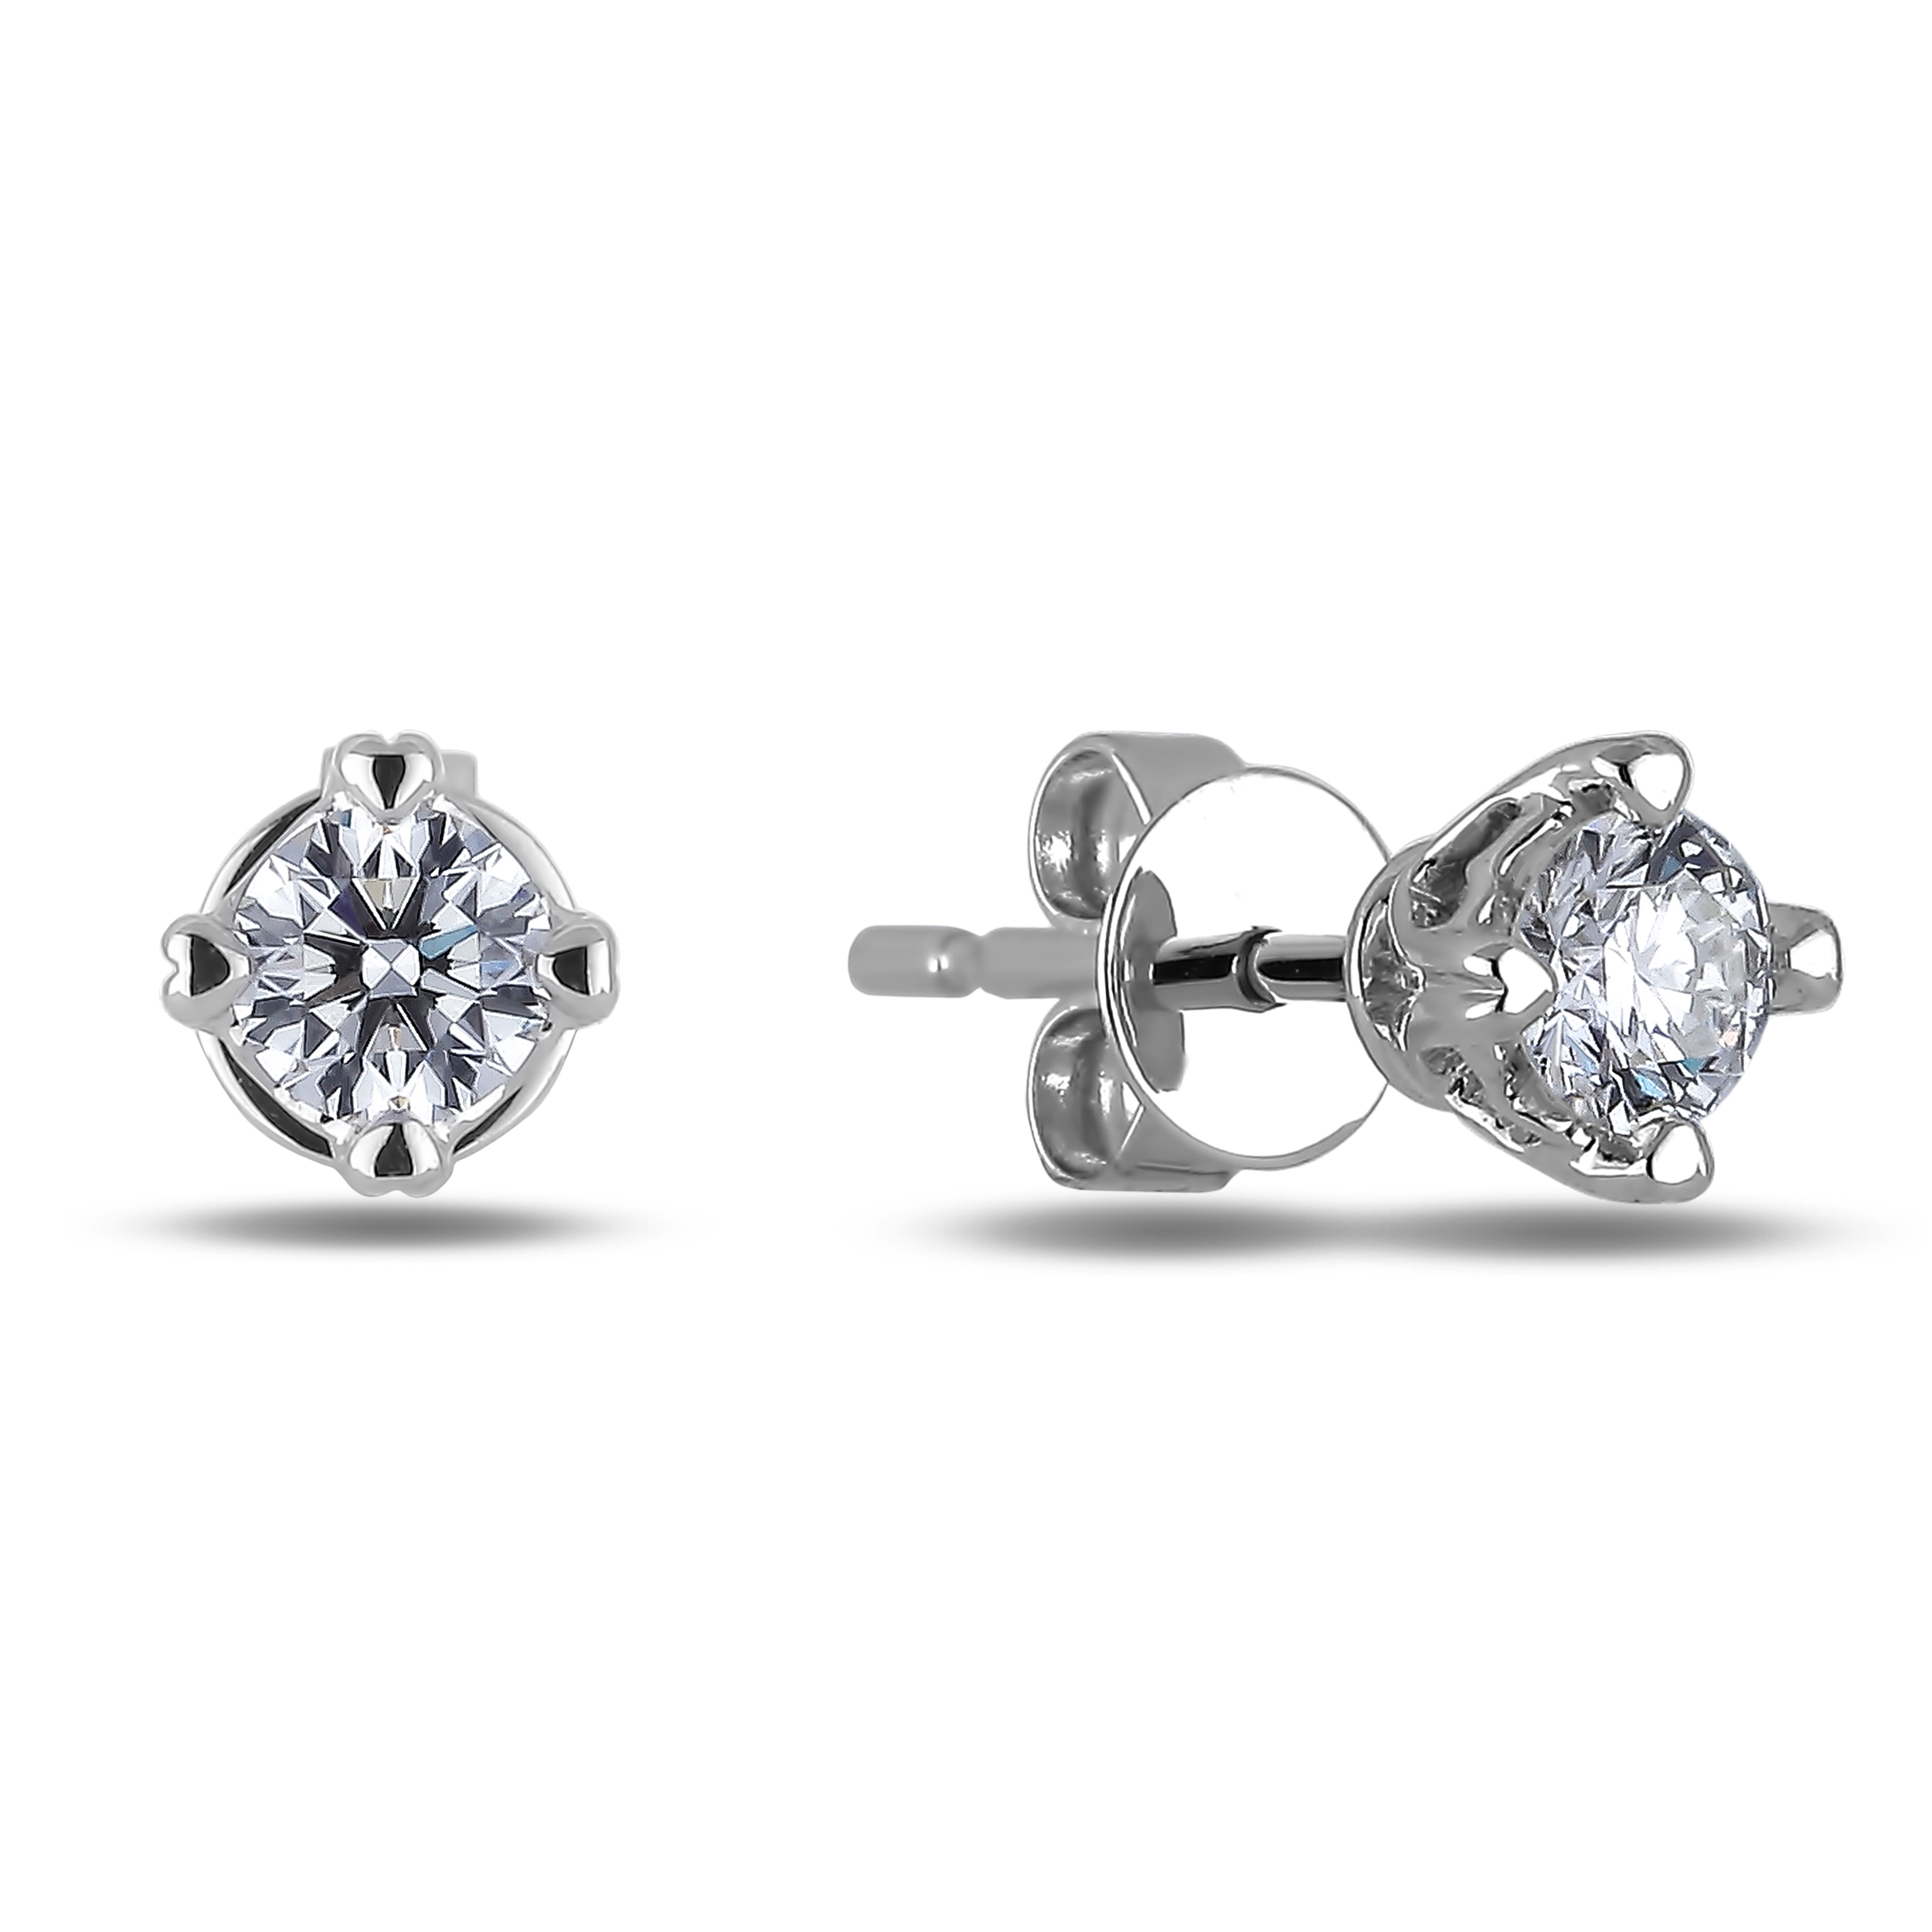 Diamond Stud Earrings SGE280 (Earrings)